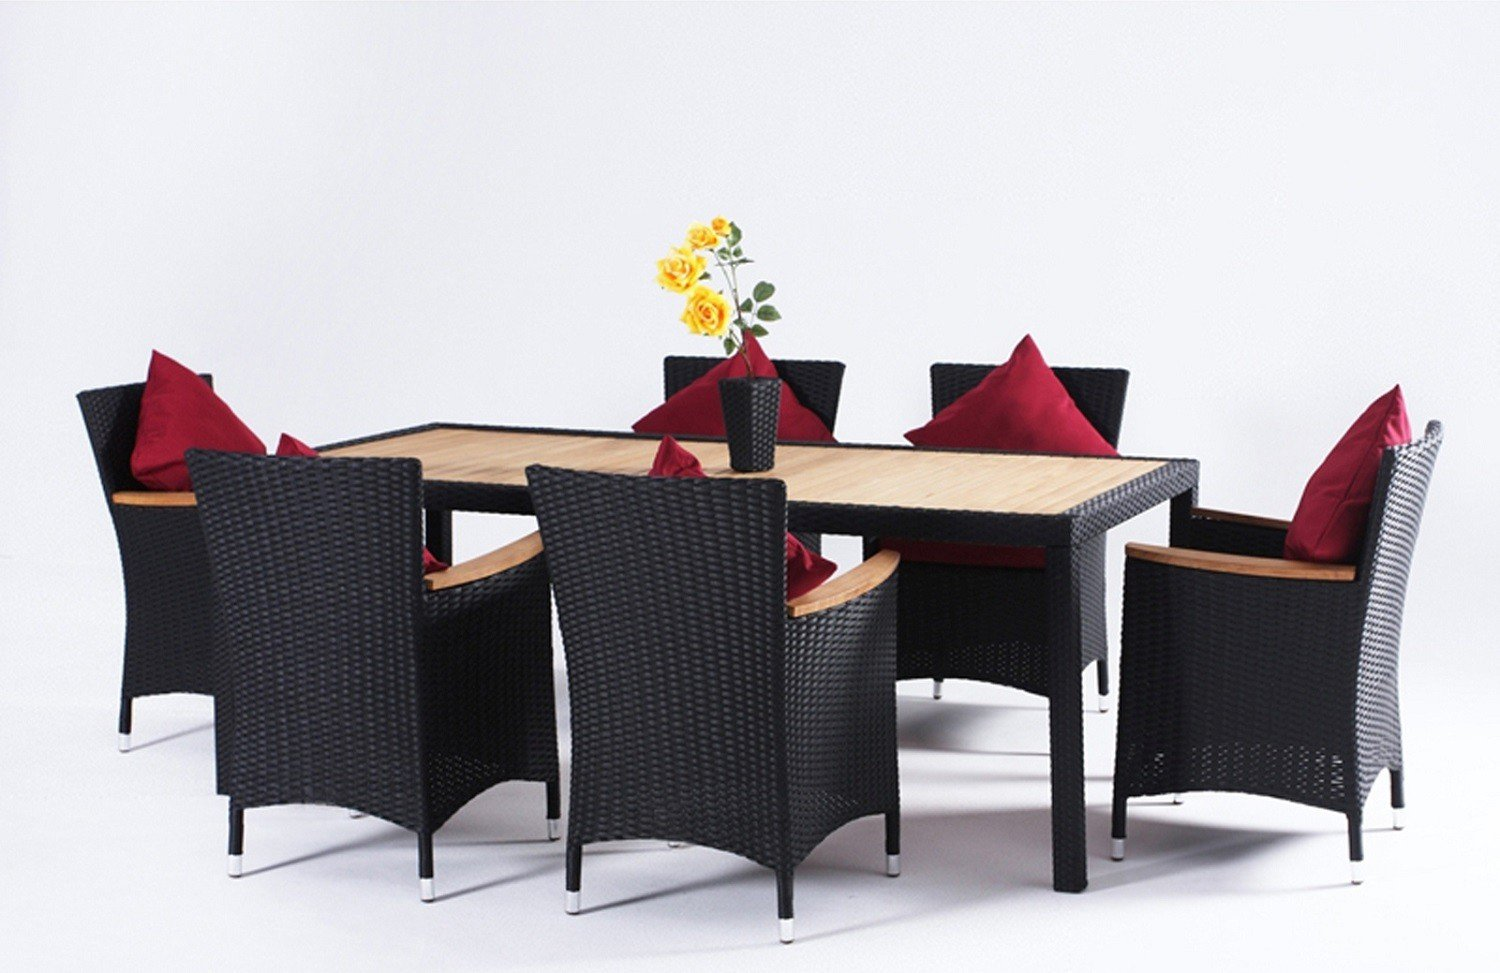 polyrattan sitzgruppe 7tlg tisch armlehnst hle kunstholz. Black Bedroom Furniture Sets. Home Design Ideas